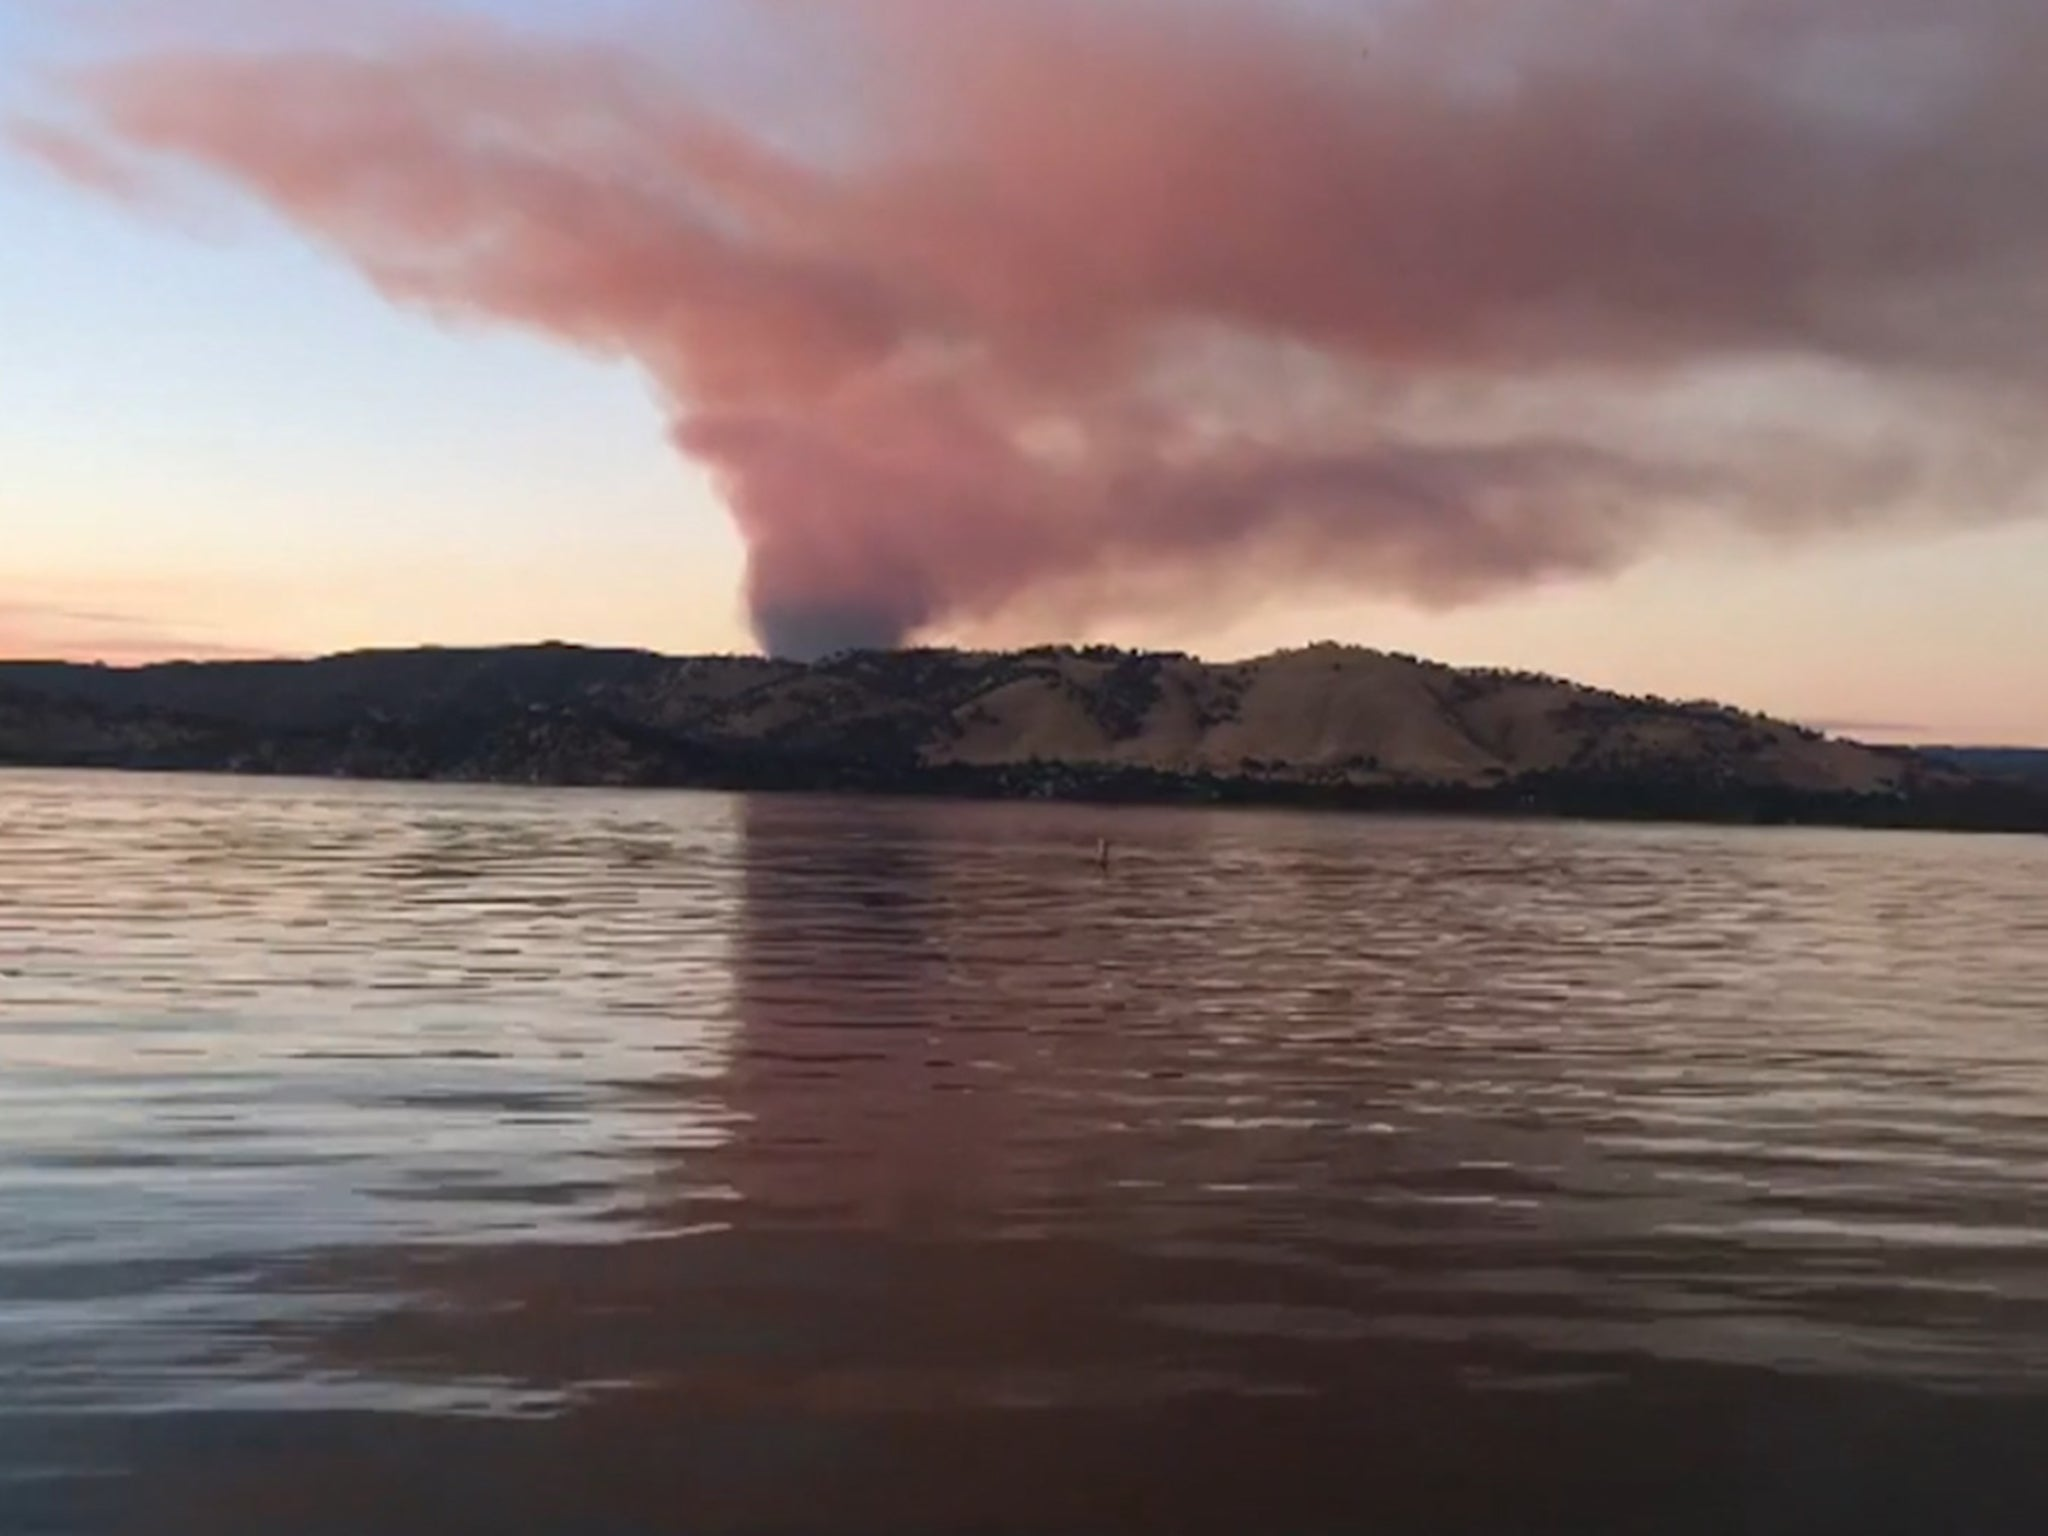 California wildfires: Timelapse video shows smoke pouring over Clear Lake